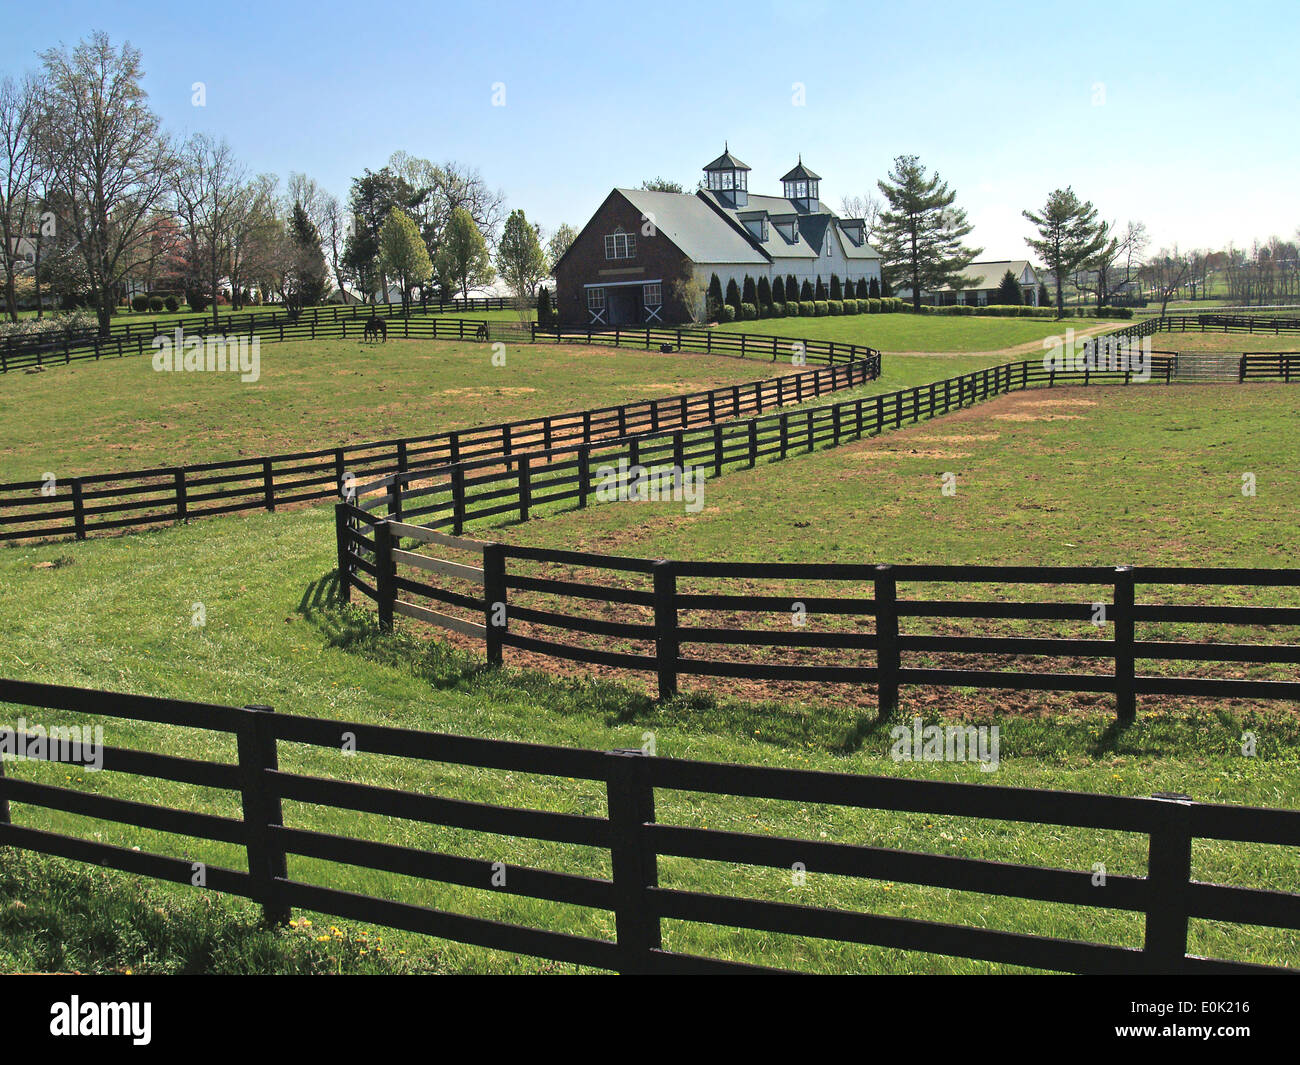 Black fences and a horse barn with cupolas on The Bluegrass Driving Tour,Lexington,Kentucky - Stock Image